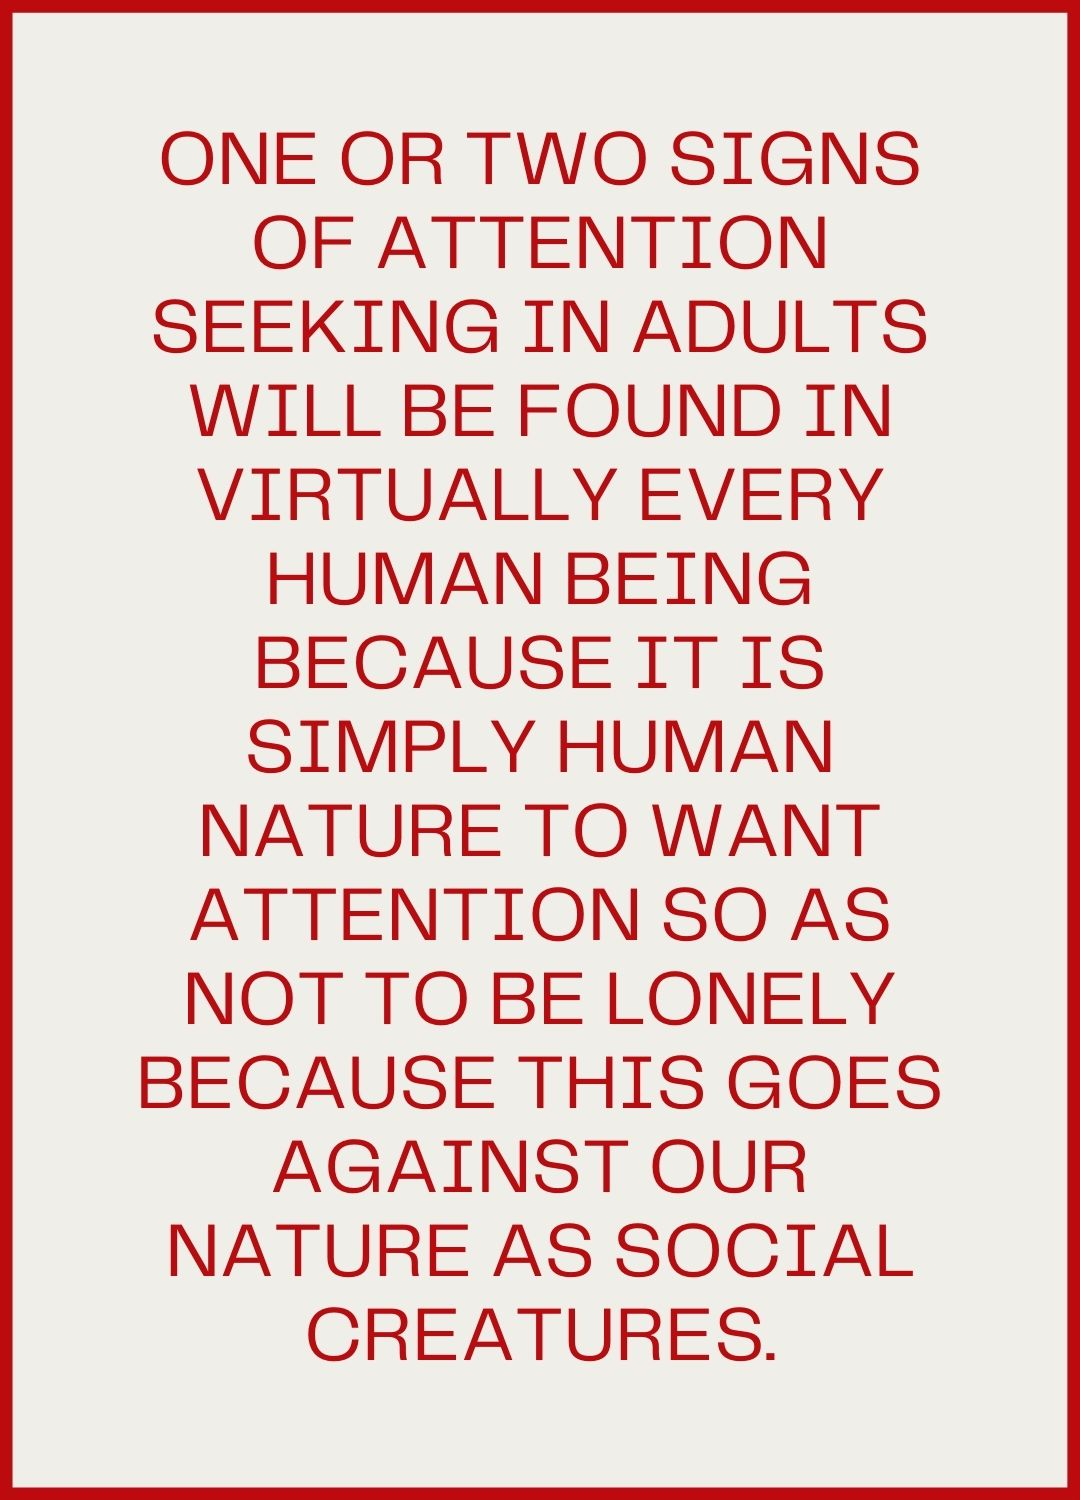 One or two signs of attention seeking in adults will be found in virtually every human being because it is simply human nature to want attention so as not to be lonely because this goes against our nature as social creatures.